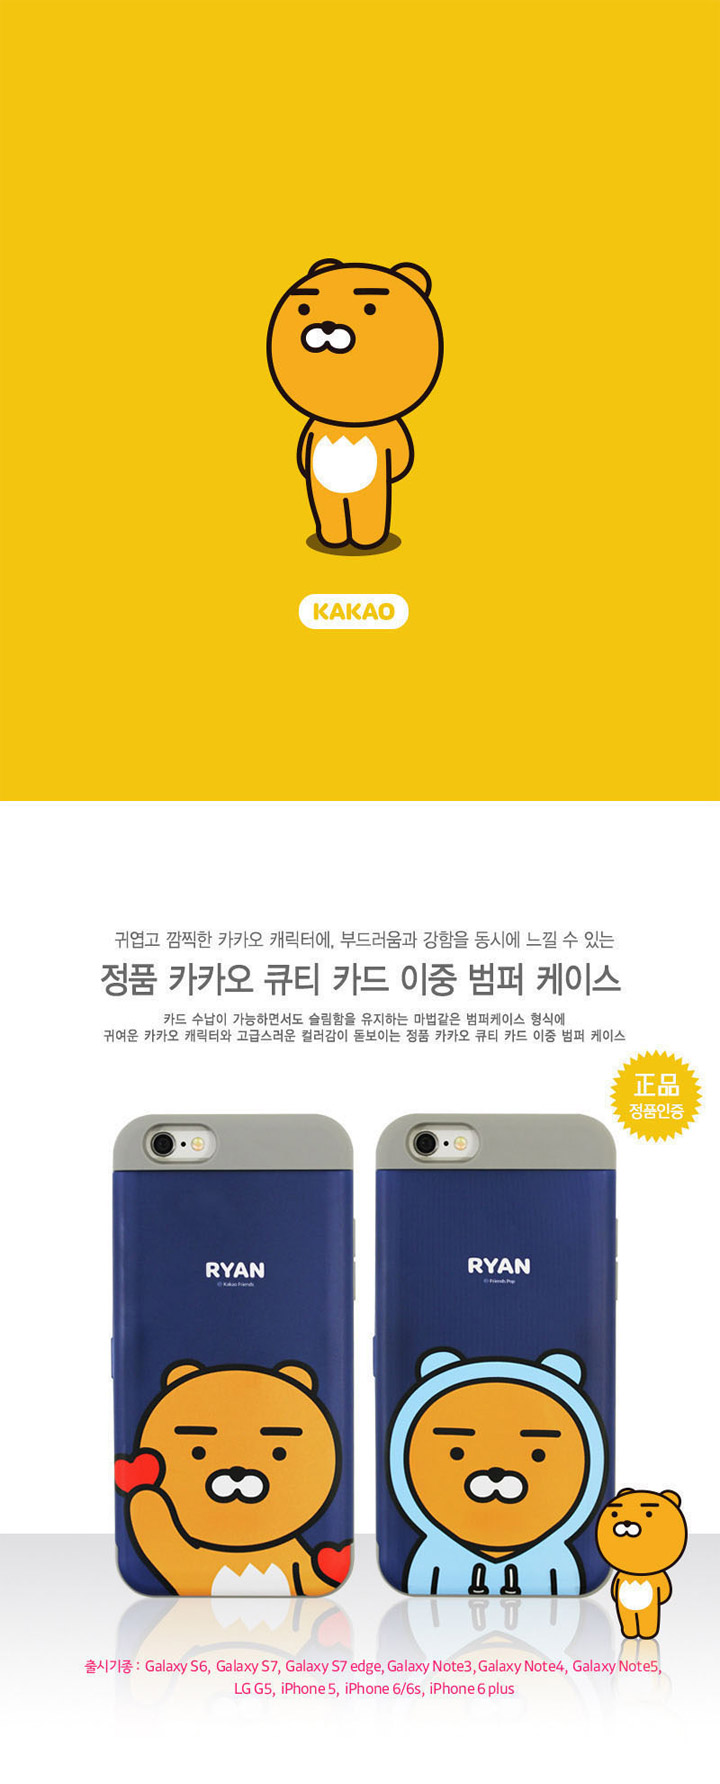 715c5ca4e Product Information. Product : [ KAKAO FRIENDS ] KAKAO Card Double Bumper  Case - For Galaxy ...